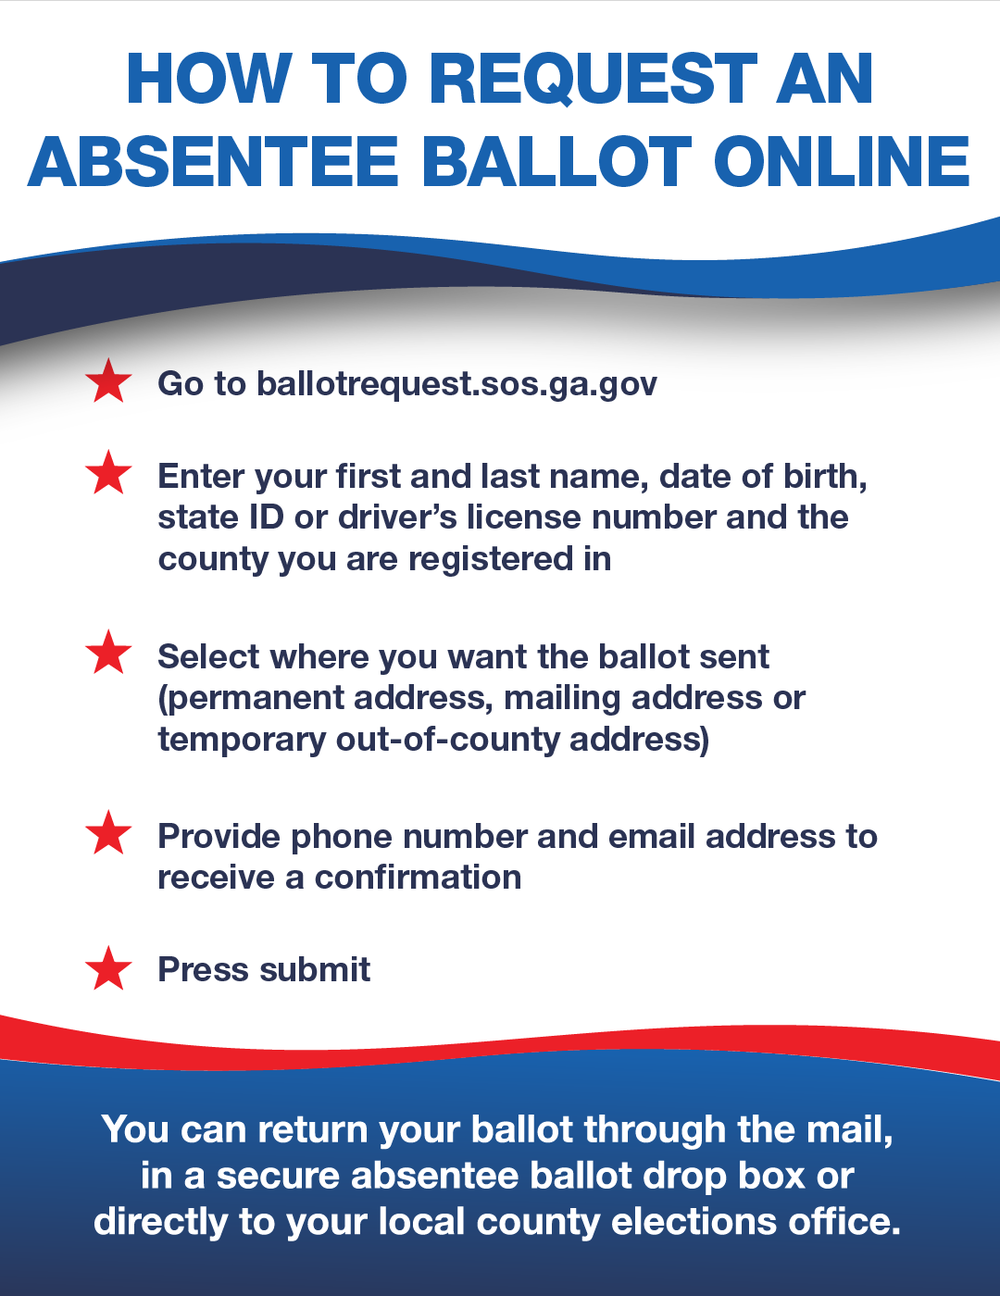 How to request an absentee ballot online in Georgia.